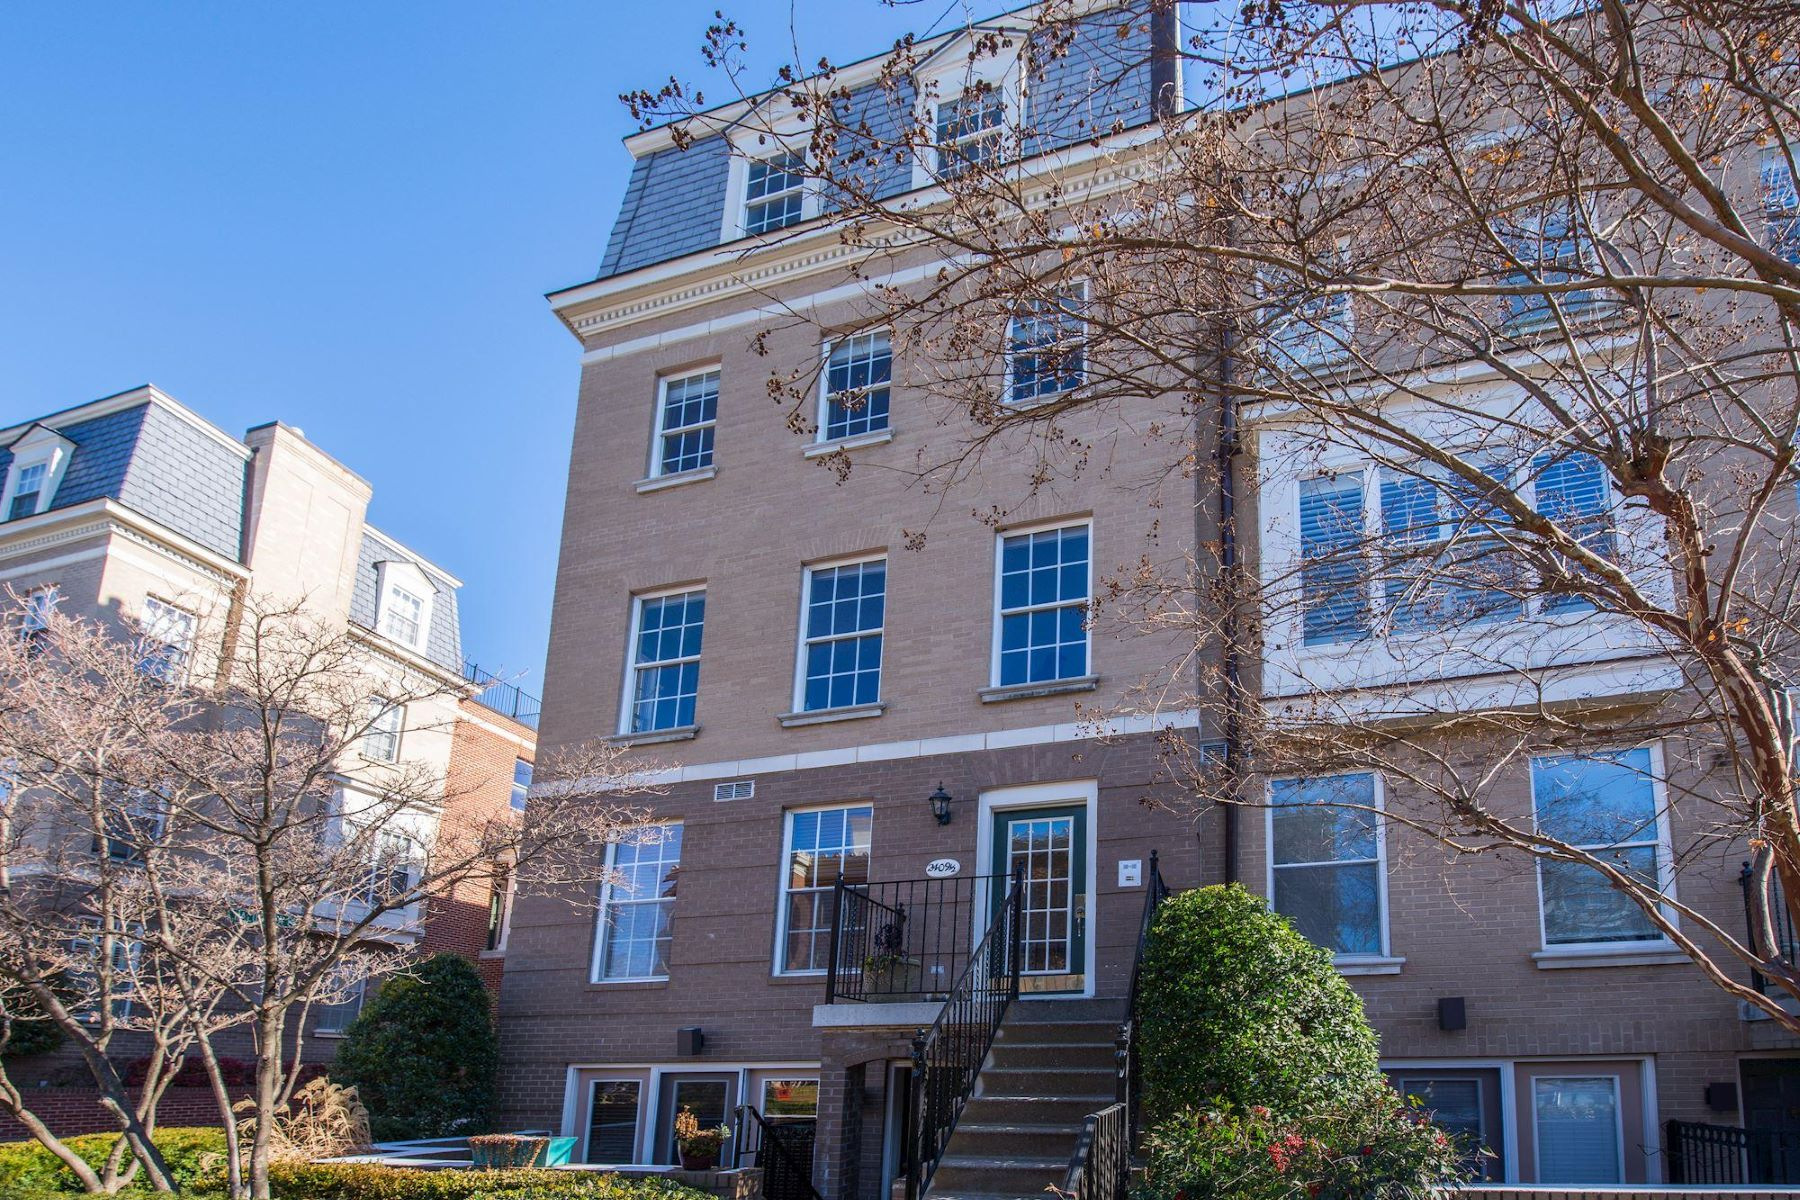 Condominium for Sale at 24091/2 20th St Nw #1090 24091/2 20th St Nw #1090 Washington, District Of Columbia 20009 United States